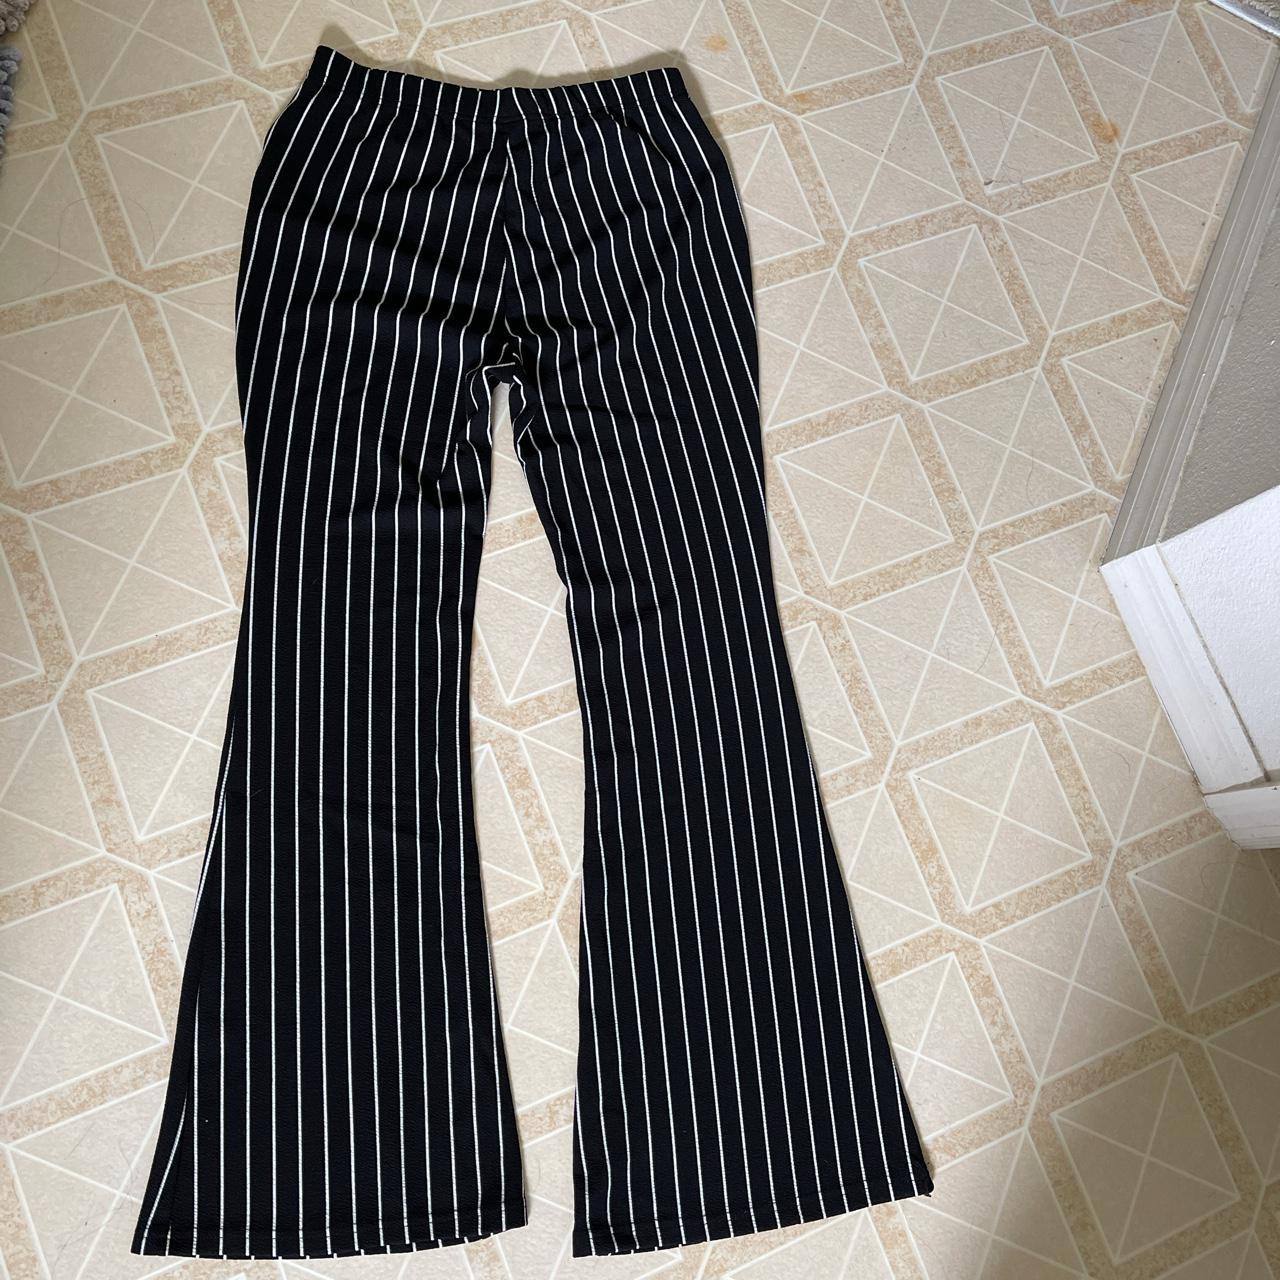 Product Image 1 - Vertical striped boot cut/bell bottom